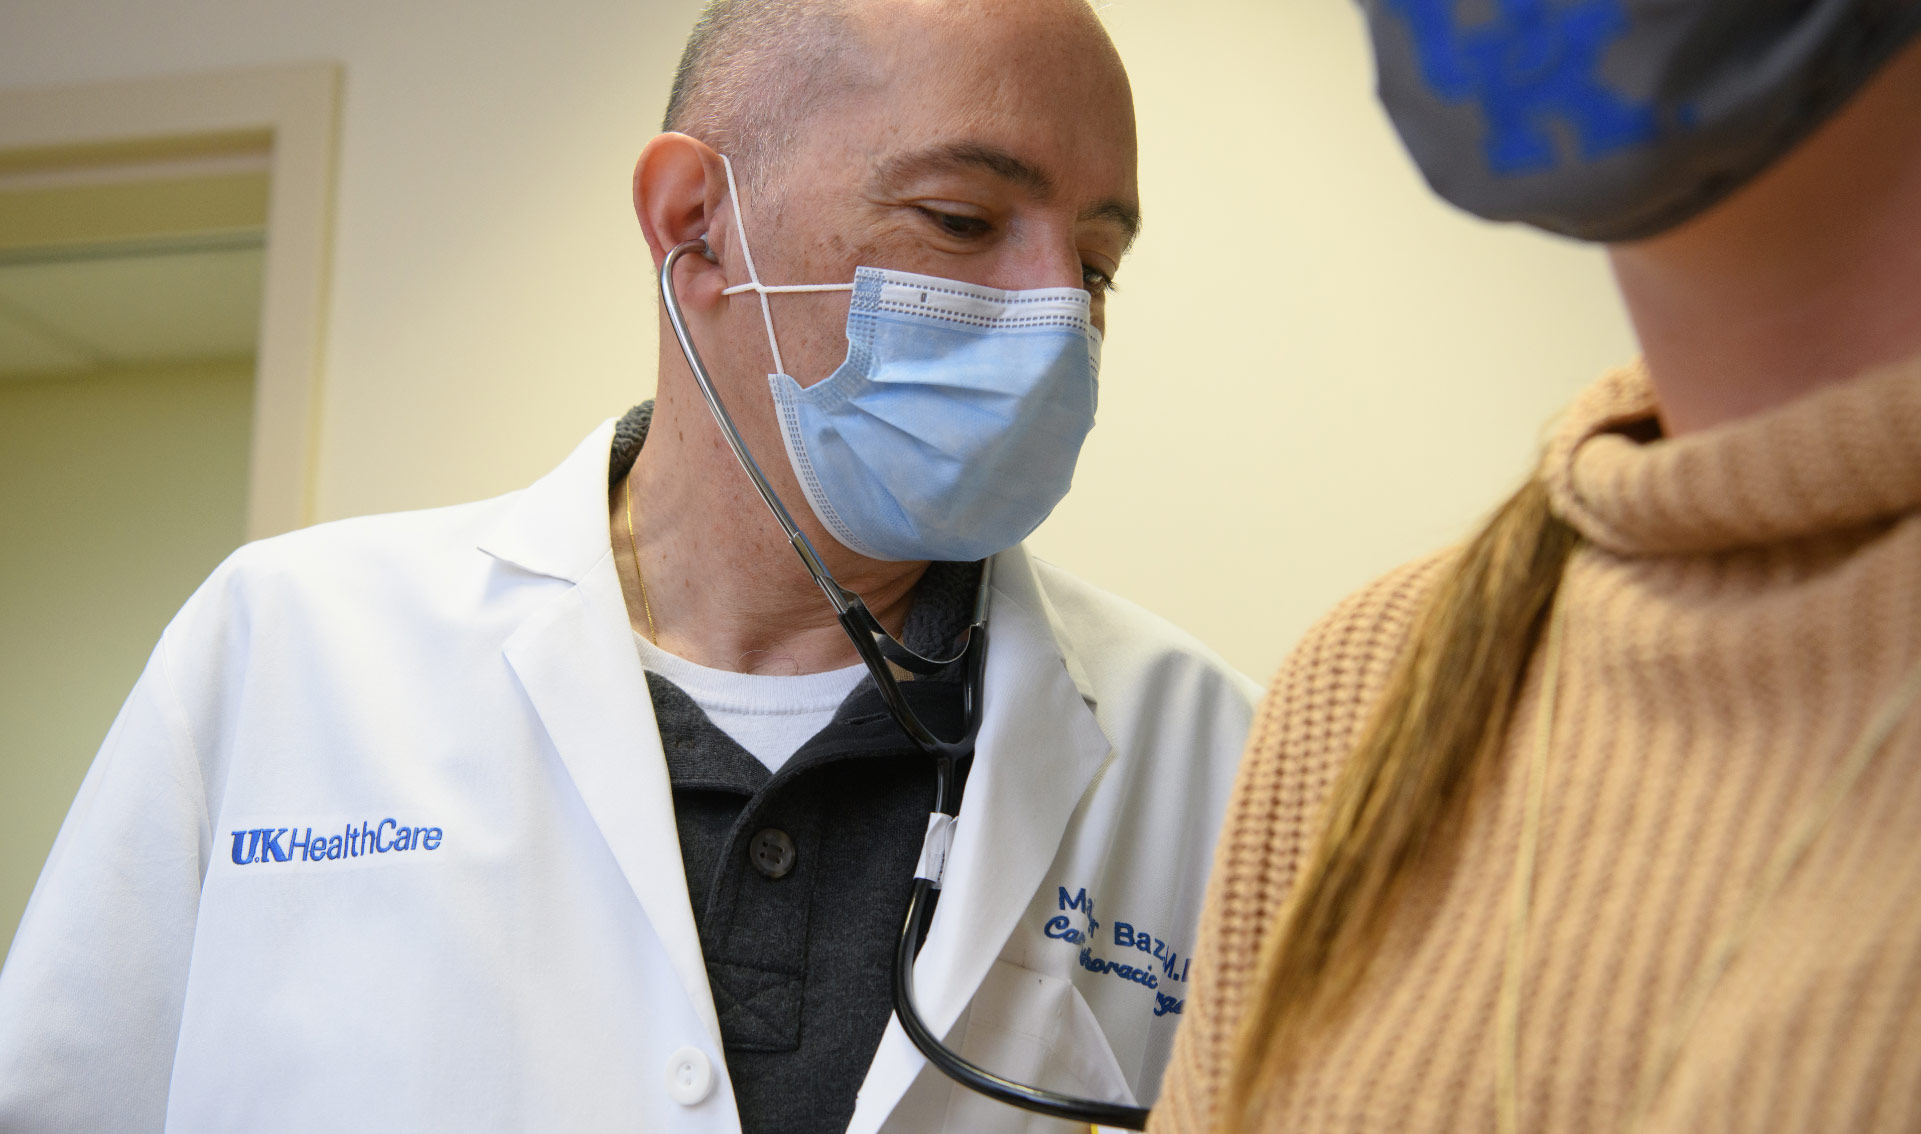 Dr. Baz, in his UK HealthCare white coat and facemask, is examining his patient with a stethoscope. The patient is a young white woman with brown hair, wearing a light brown sweater with a facemask.